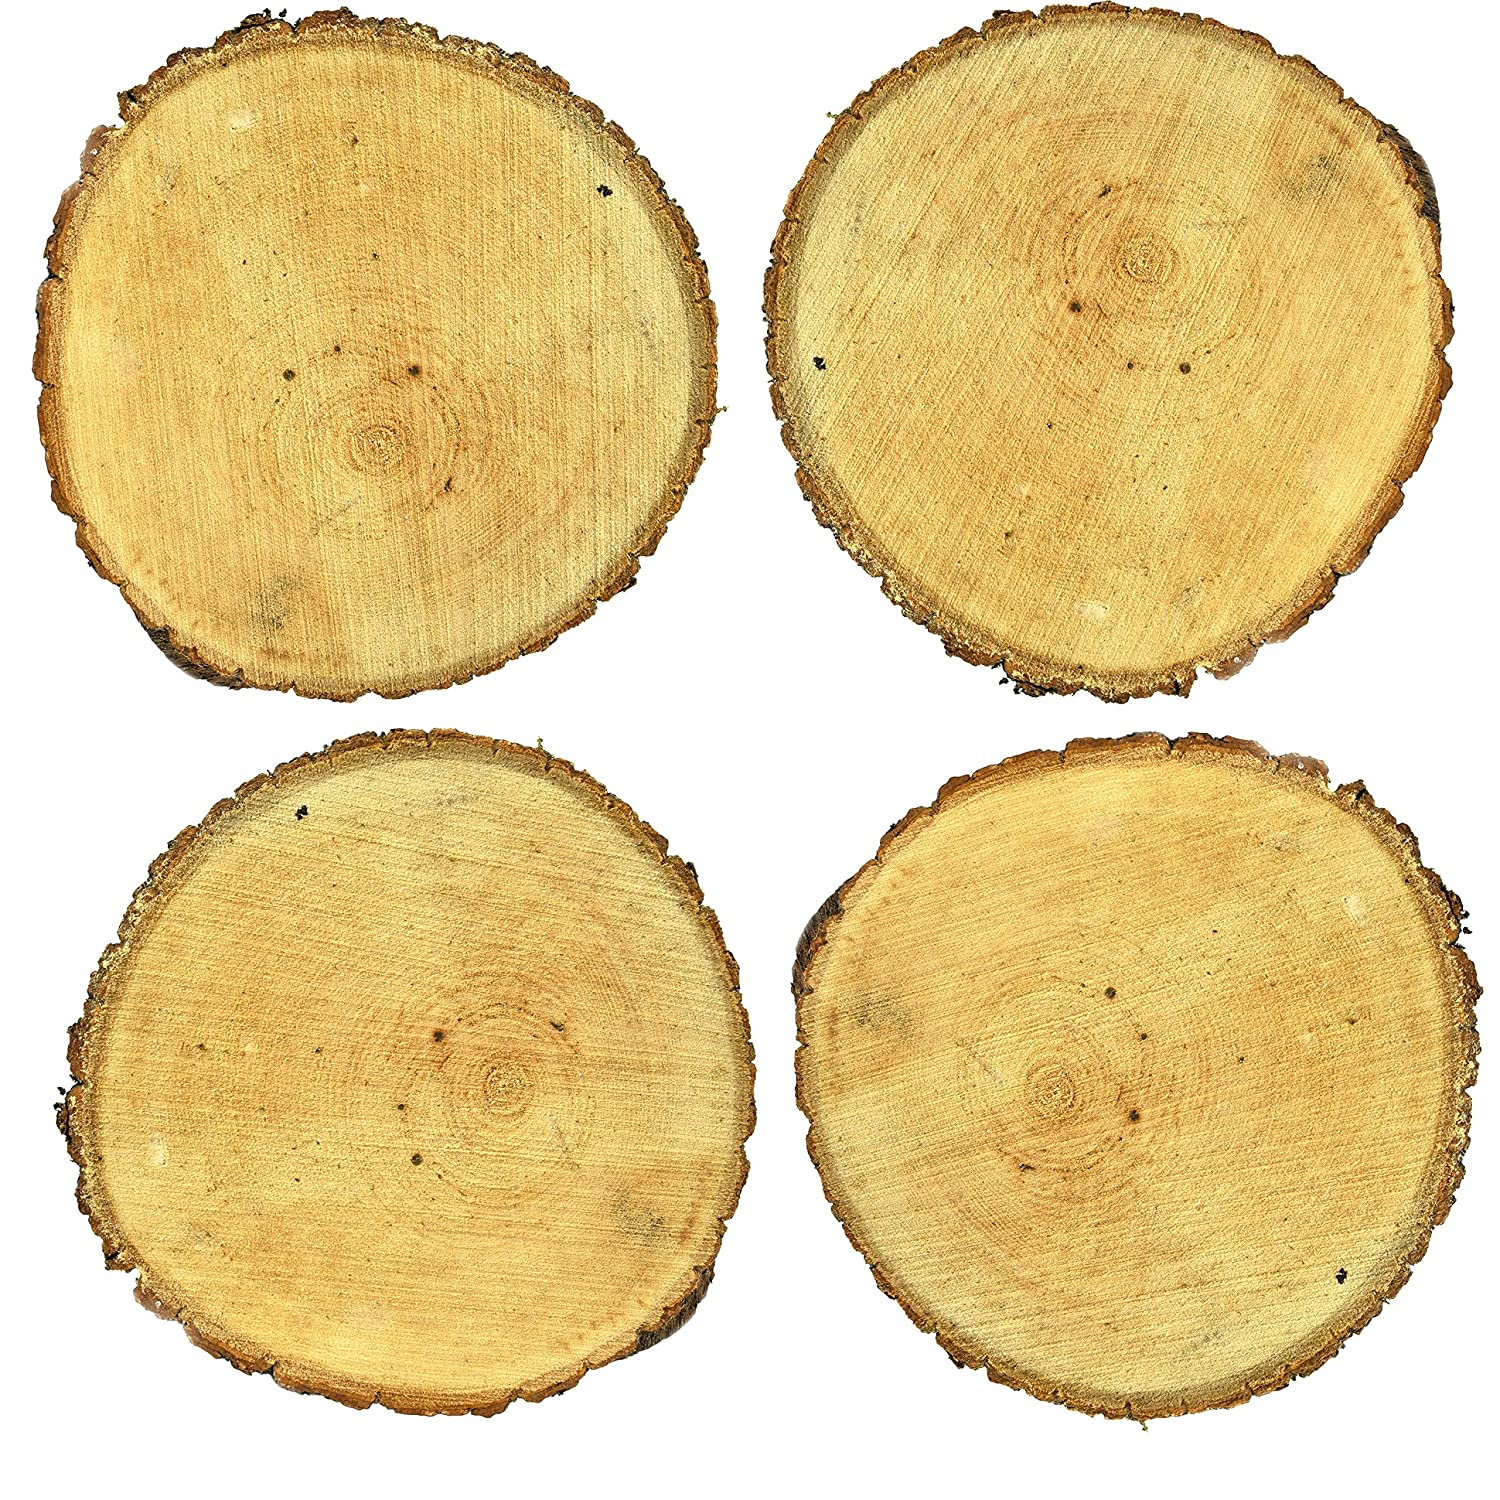 Large Cracked Mayde Basswood Decorative Tree Discs 9-11 inches, Set of 4